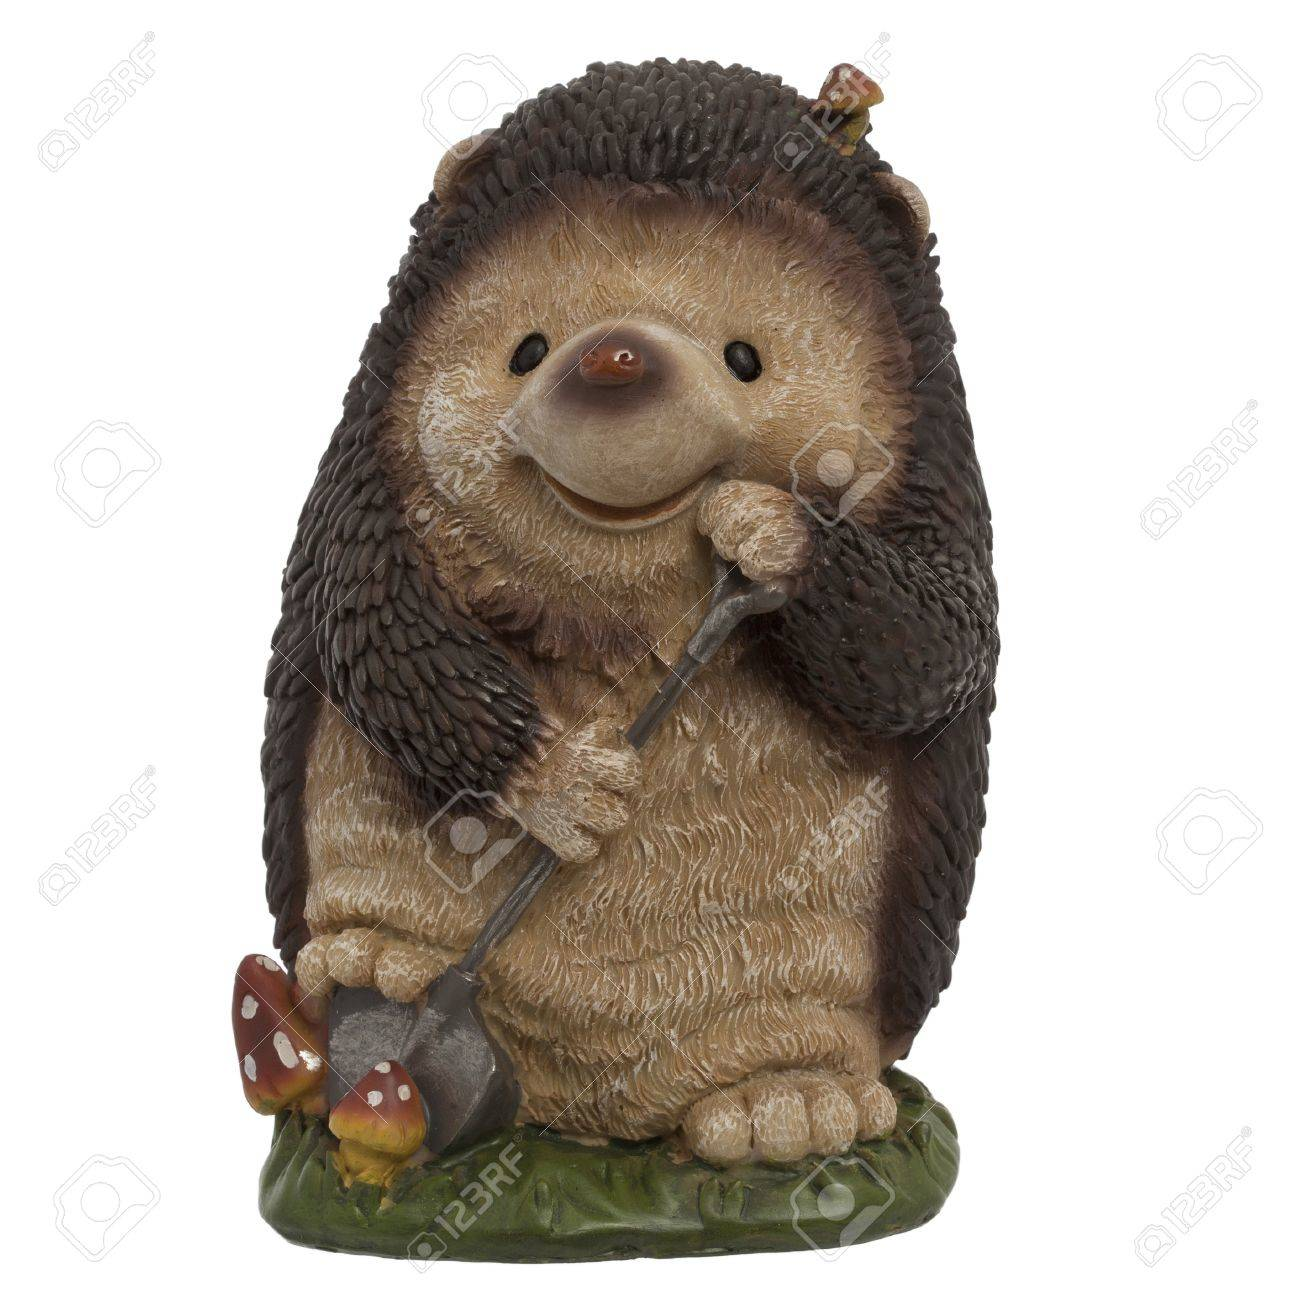 Statue Garden Hedgehog Stock Photo Picture And Royalty Free Image